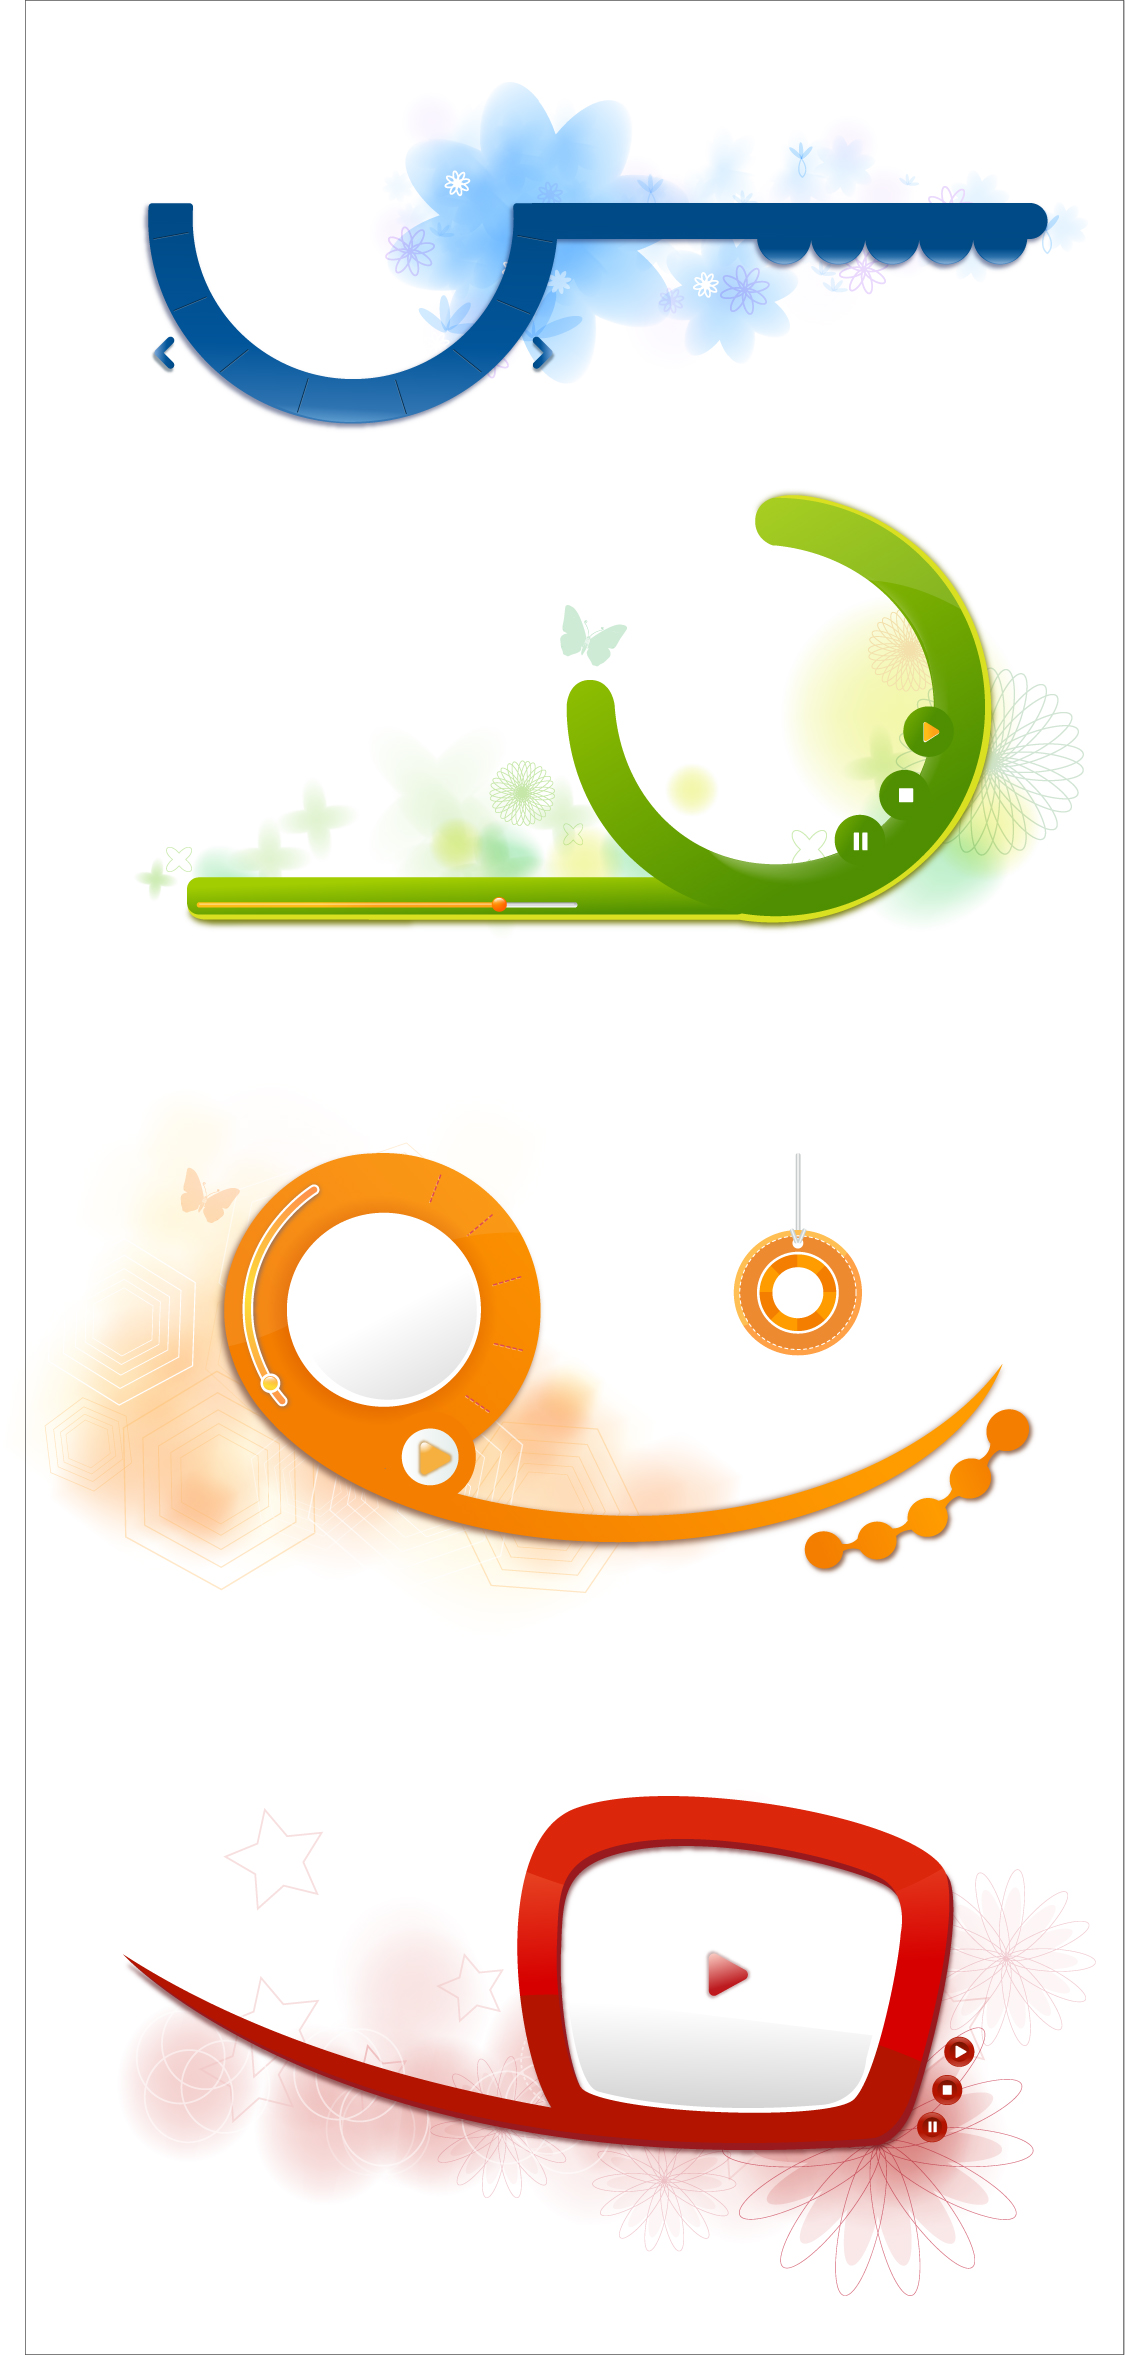 Free Graphic Images Download Clipart Best